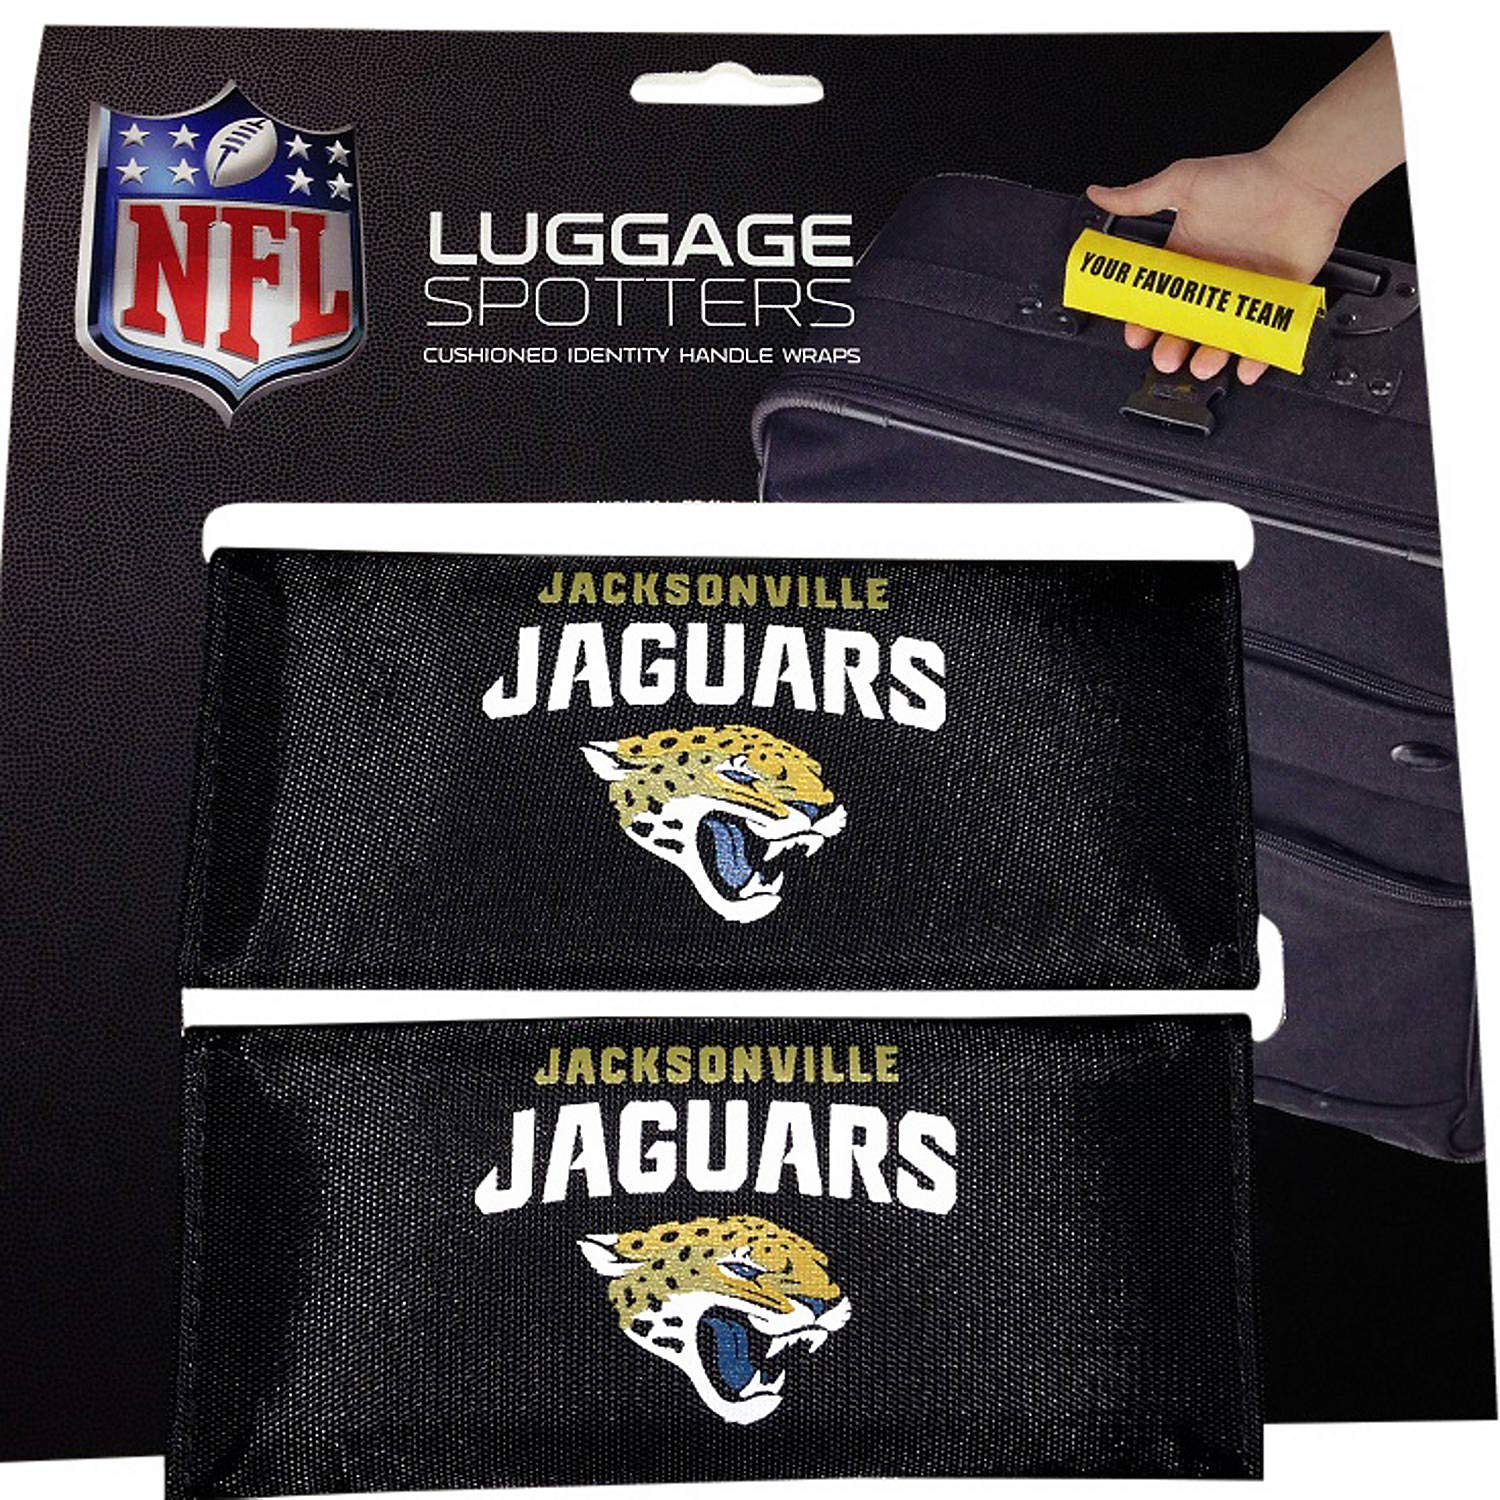 JAGUARS Luggage Spotter Suitcase Handle Wrap Bag Tag Locator with I.D. Pocket (2-PK) - CLOSEOUT! by Luggage Spotter